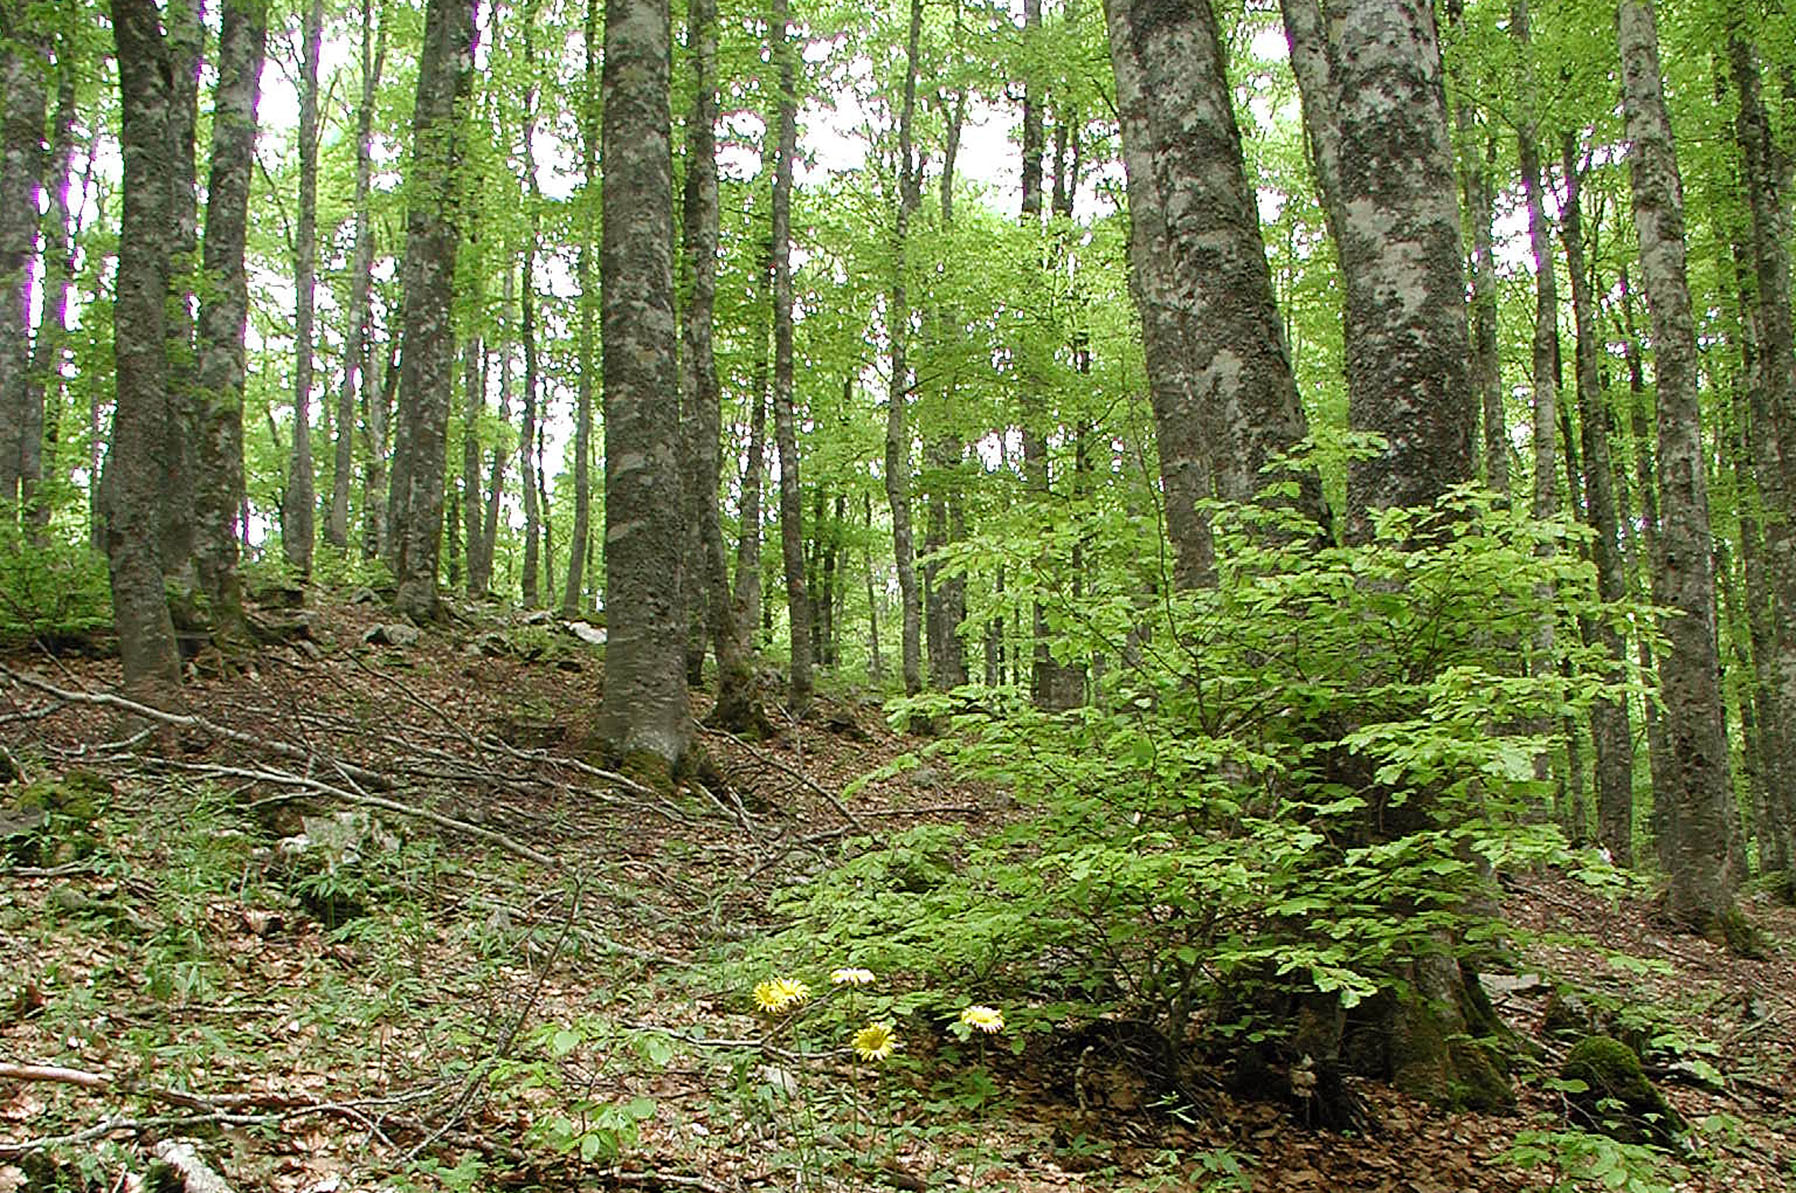 conservation of trees Conservation can mean both protection against unwarranted cutting down as well as planting new ones in compensation with utmost concern because trees are.